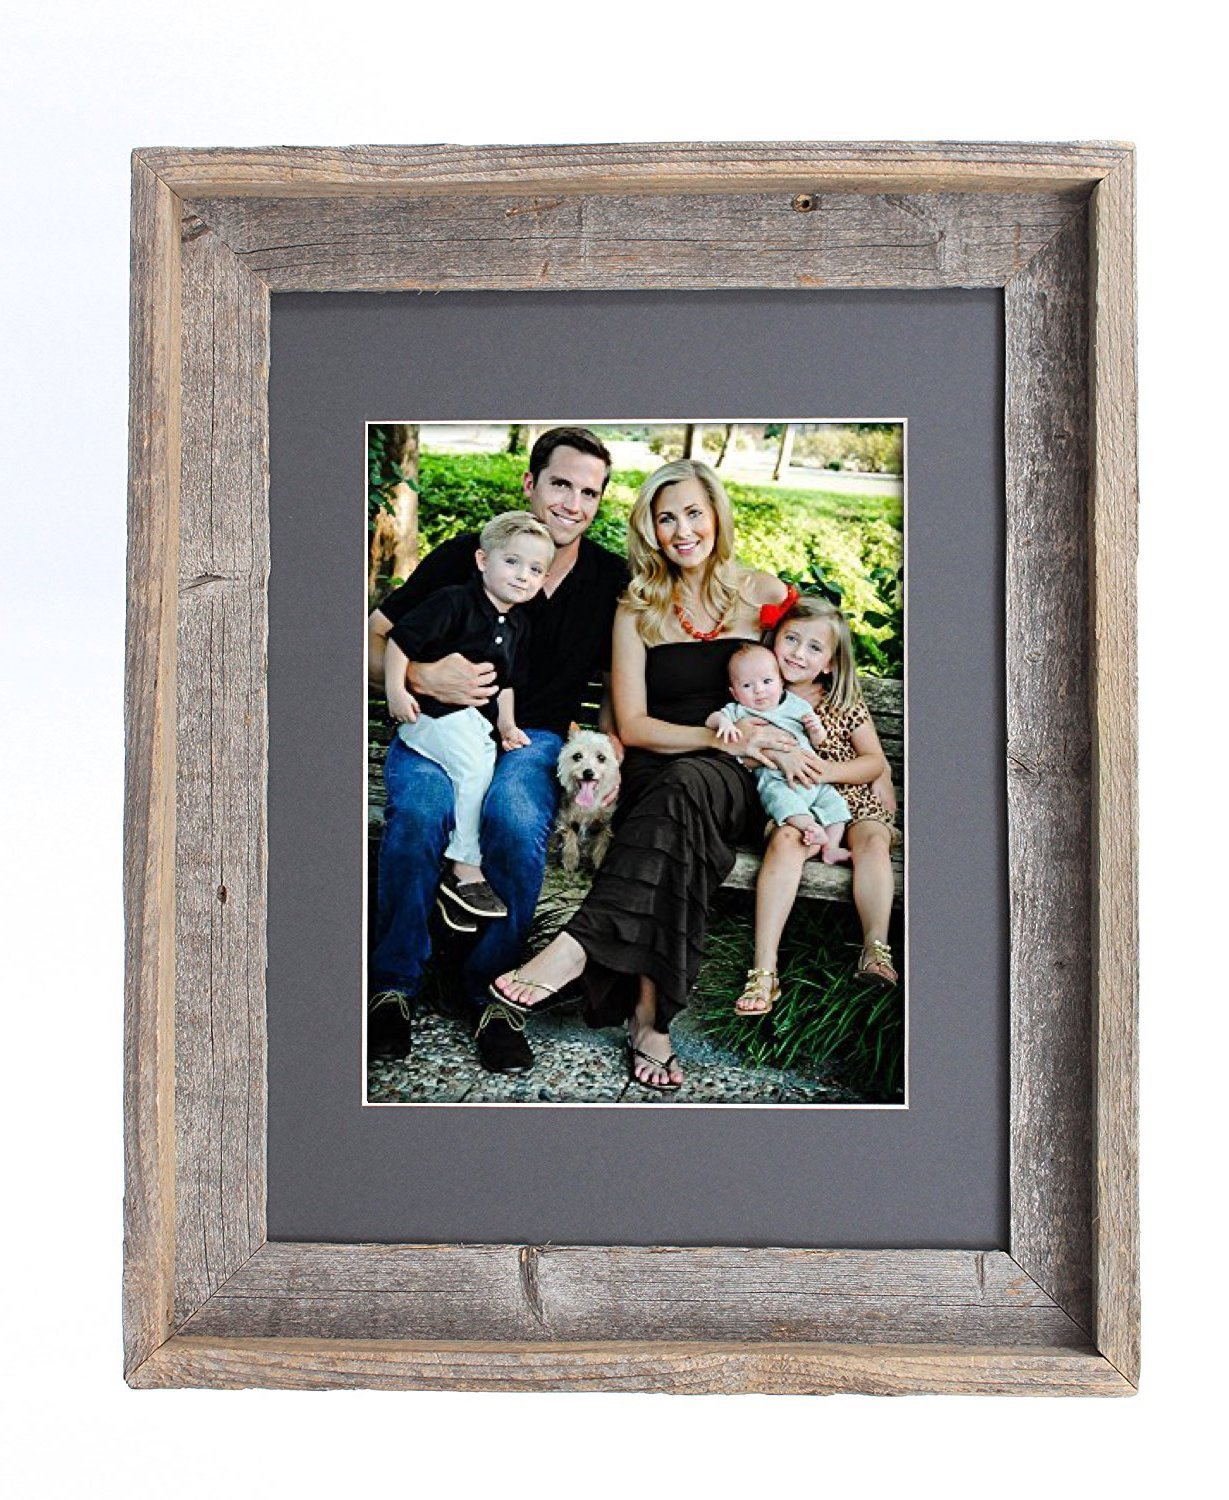 BarnwoodUSA 11x14 Inch Signature Picture Frame Matted for 8x10 Inch Photos - 100% Reclaimed Wood, Cinder Mat by BarnwoodUSA